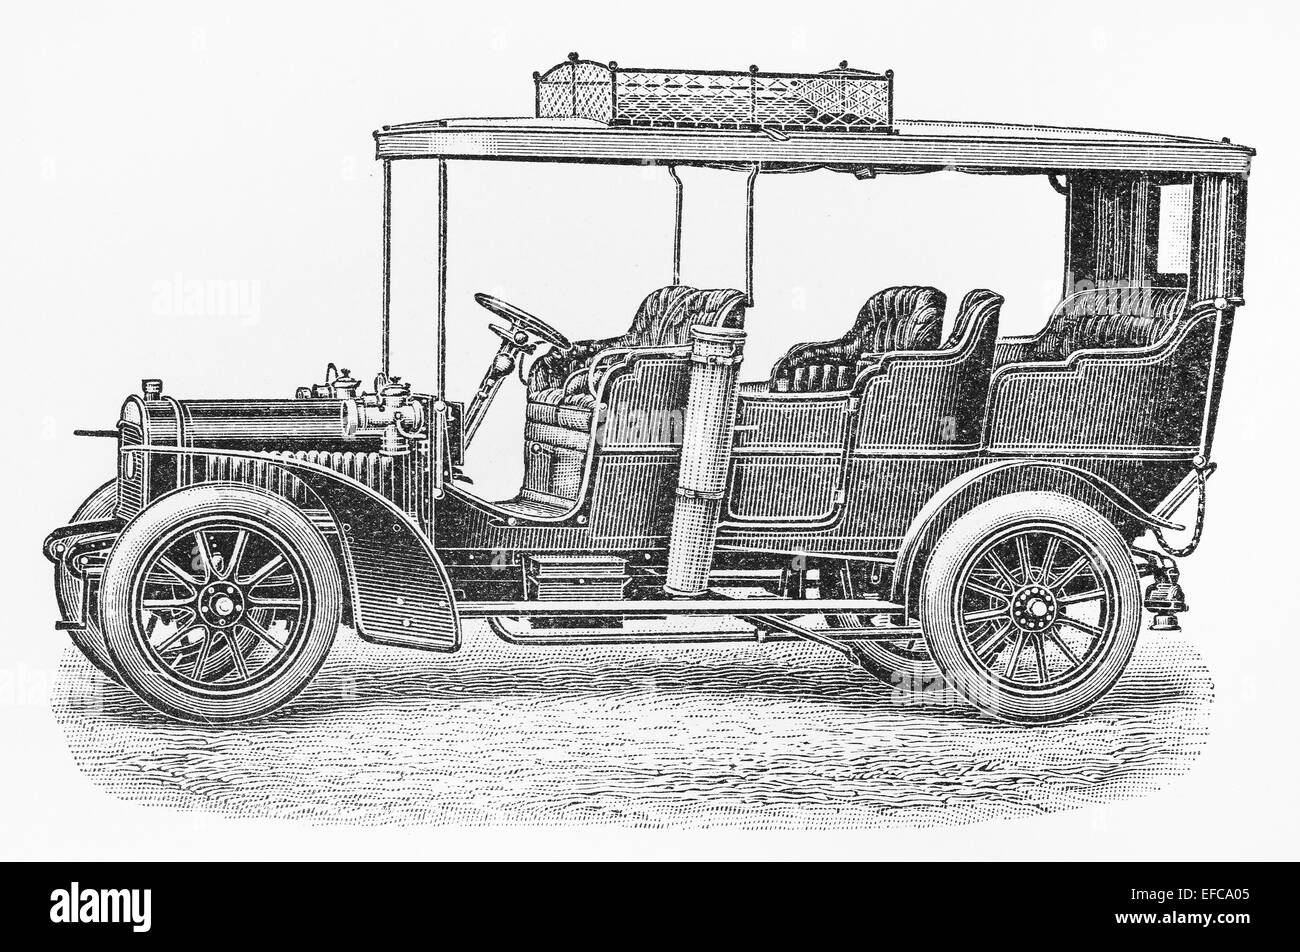 Old Car Drawing Stock Photos & Old Car Drawing Stock Images - Alamy